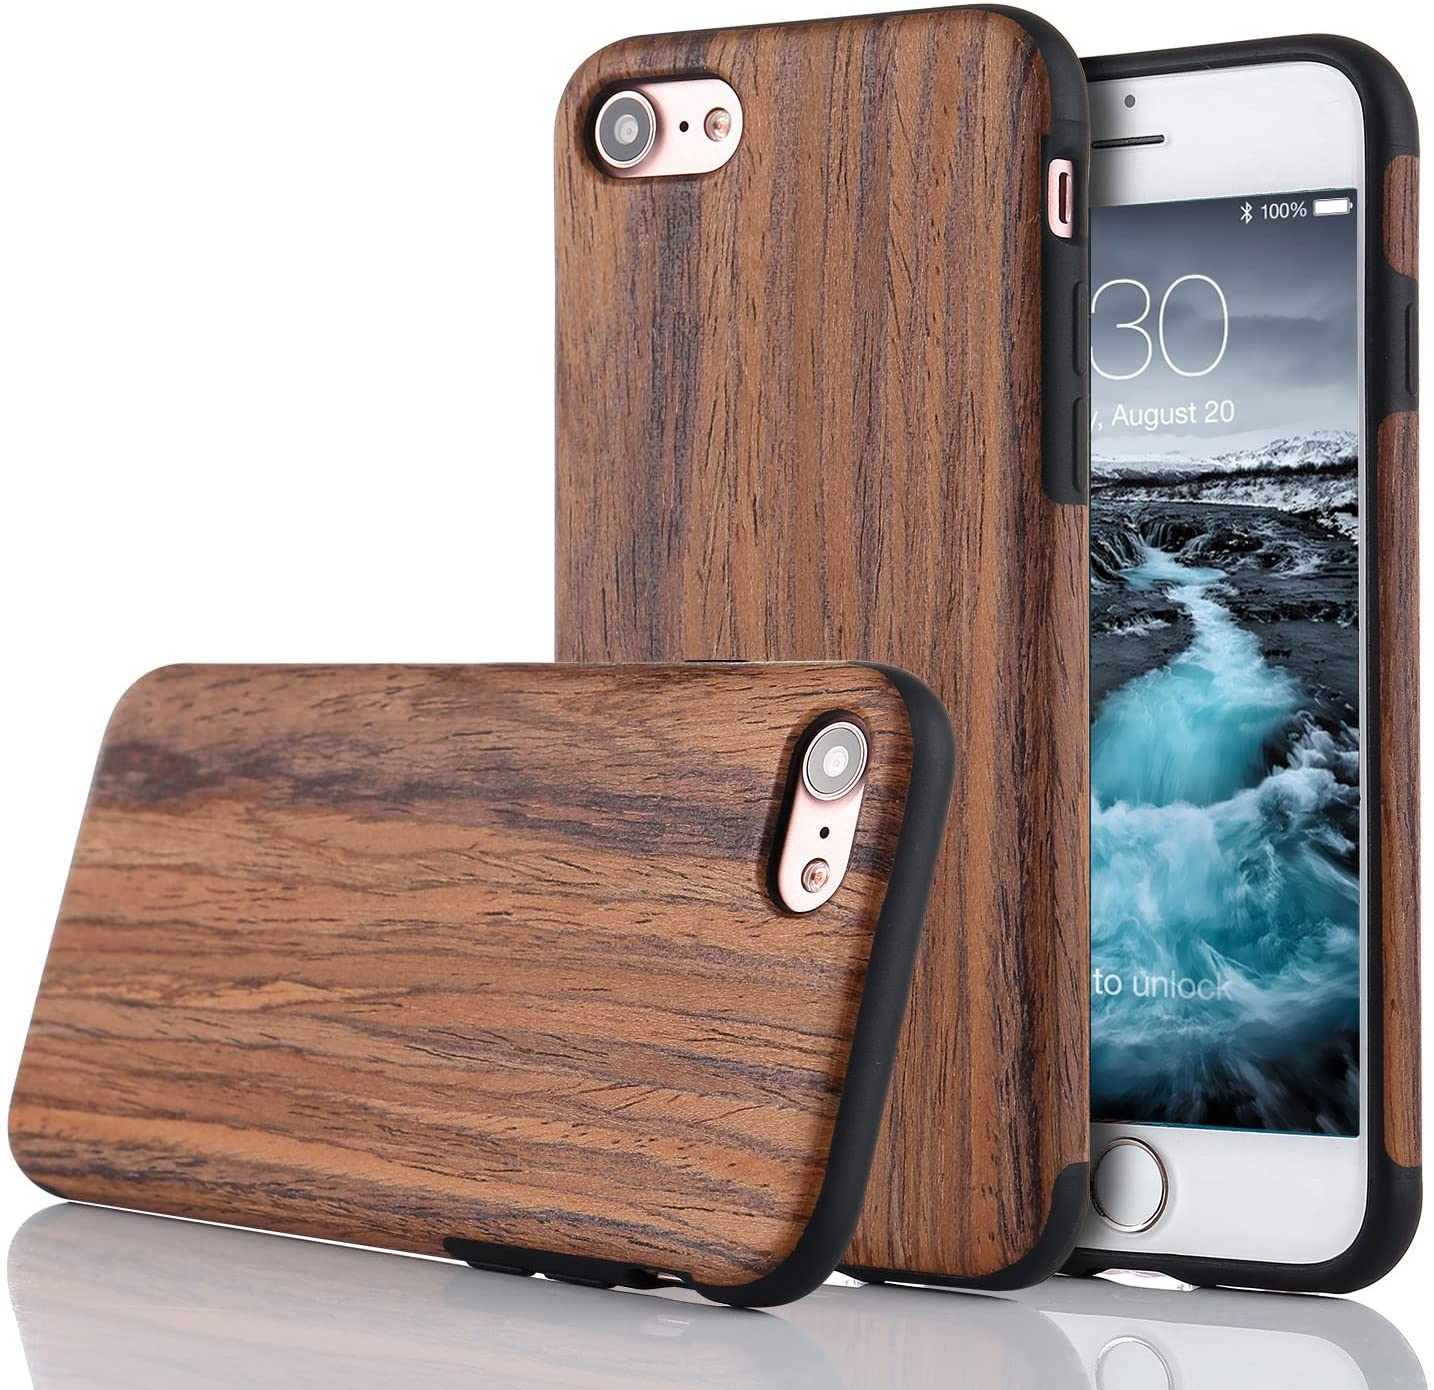 LCHULLE for iPhone SE 2020 iPhone 7 iPhone 8 Wood Case Premium Handmade Wooden Hybrid Case Wood Grain Soft TPU Silicone Slim Case Shock Absorbing Protective Cover for iPhone 7/8/SE2020-Red Sandalwood